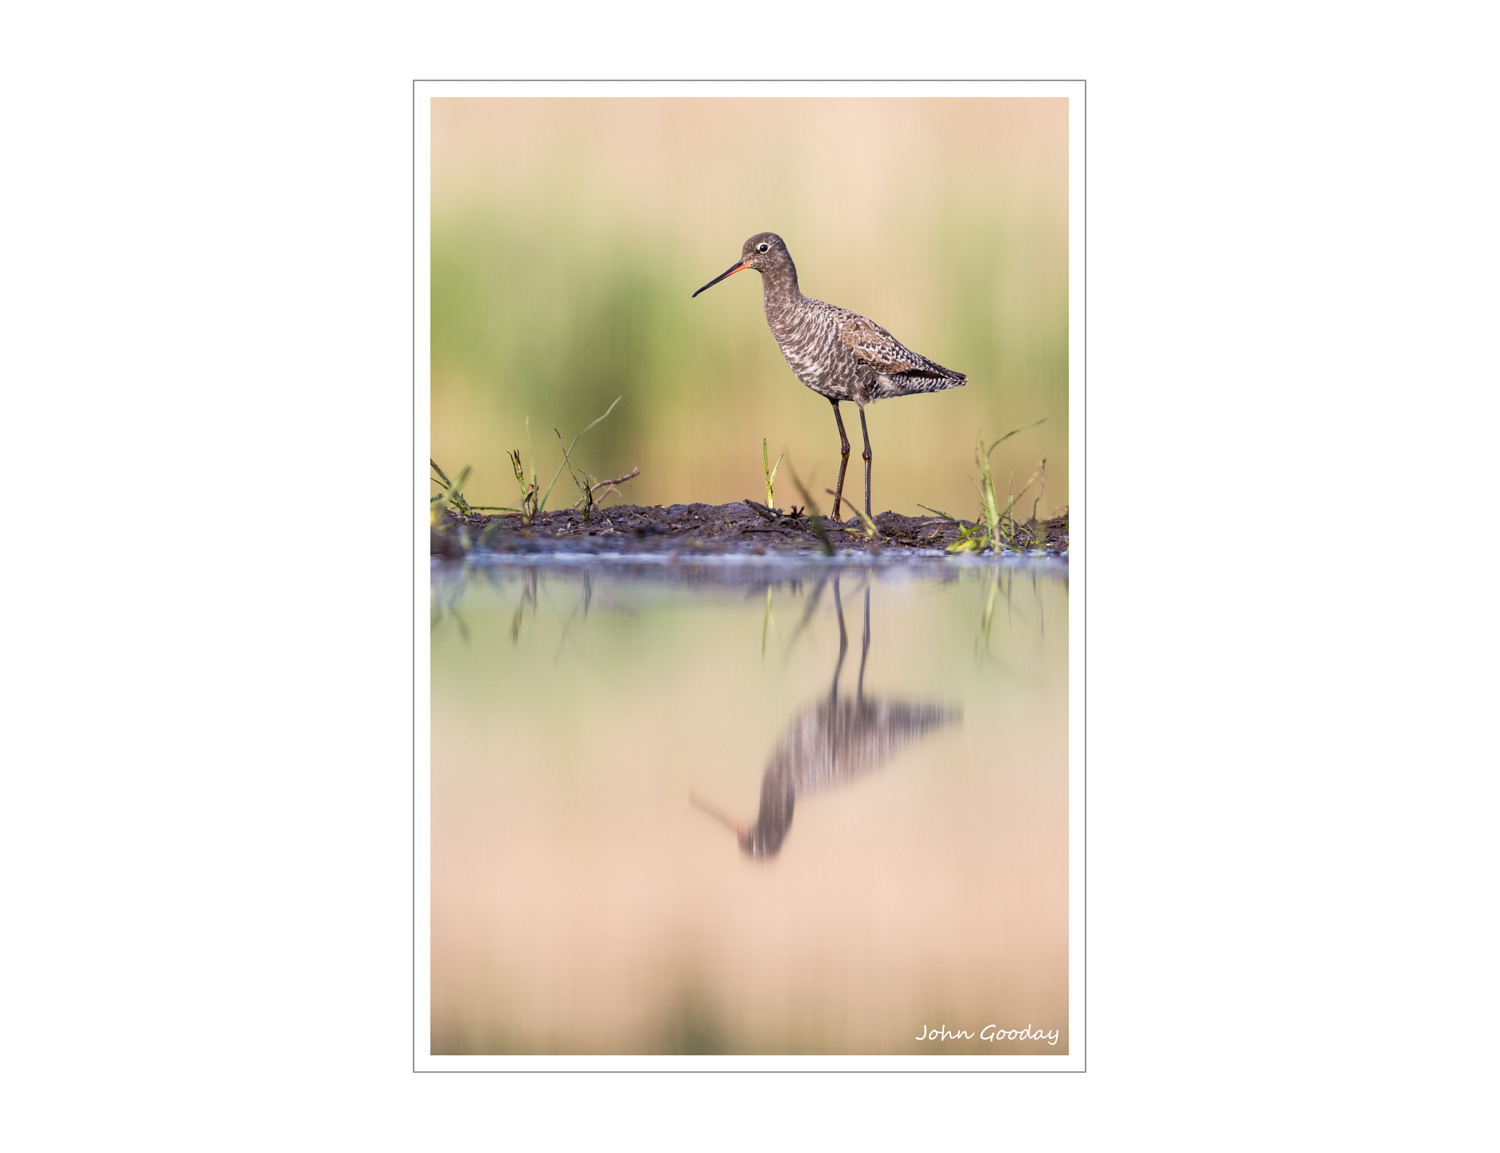 (Image: black-tailed Godwit. Canon EOS 5D Mark III, EF300mm f/2.8L IS + 1.4x II, 1/500 sec @ f/5, ISO 1600)